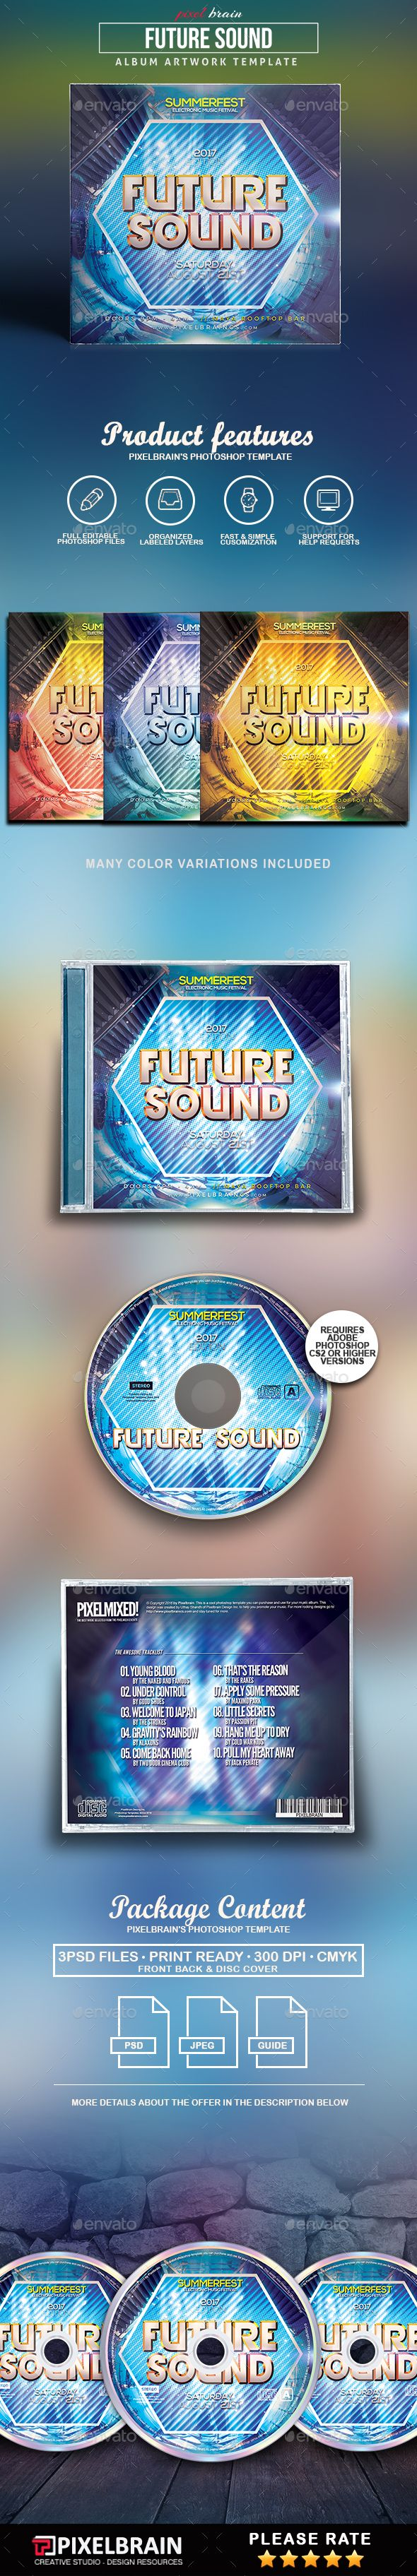 Future Sounds CD #Cover Artwork - #CD & DVD #Artwork Print #Templates Download here:  https://graphicriver.net/item/future-sounds-cd-cover-artwork/19543842?ref=alena994